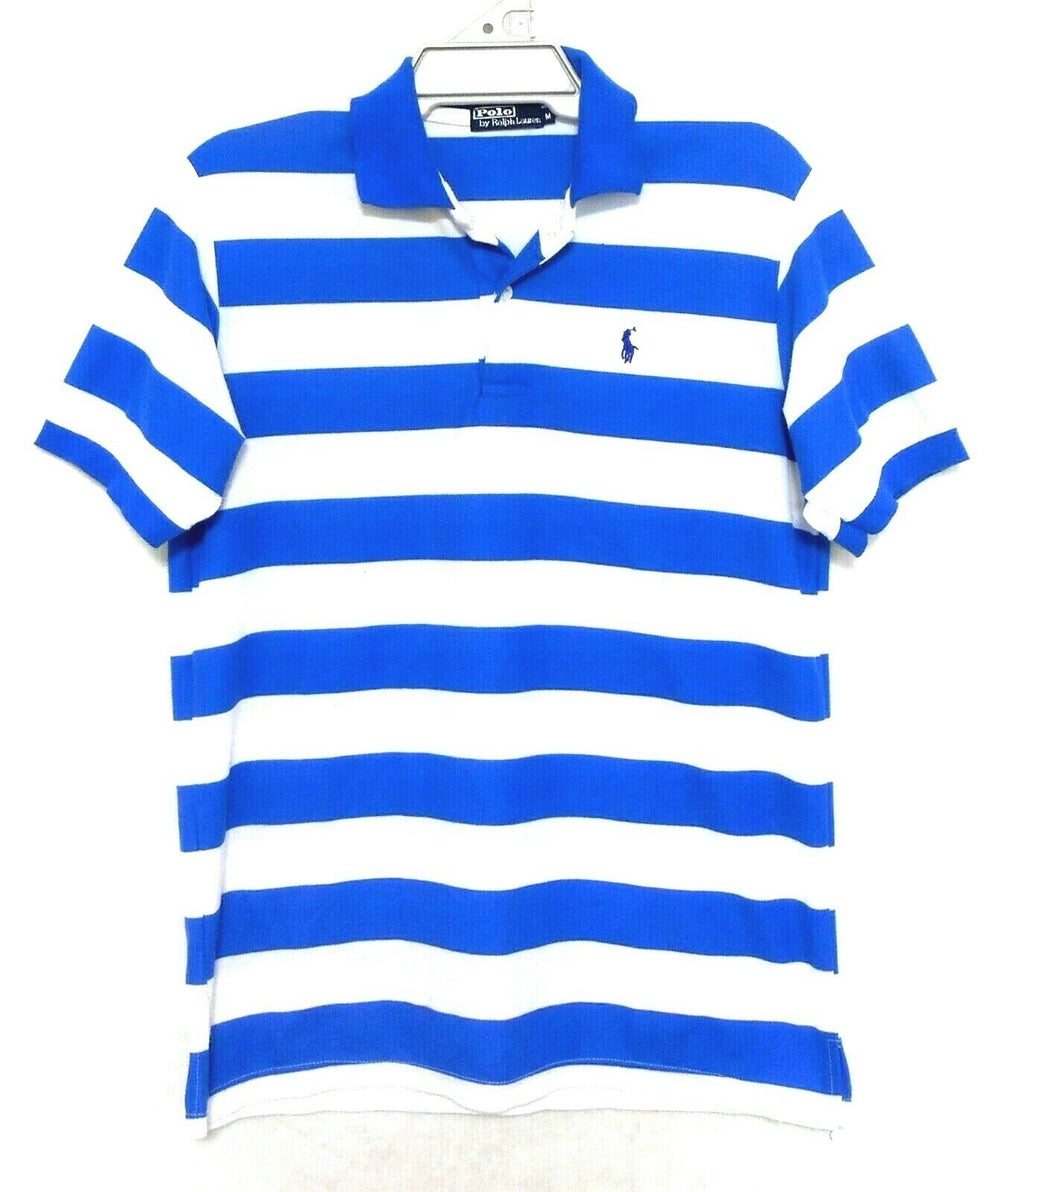 Ralph Lauren polo tee shirt royal blue/white striped, sz. M, near new